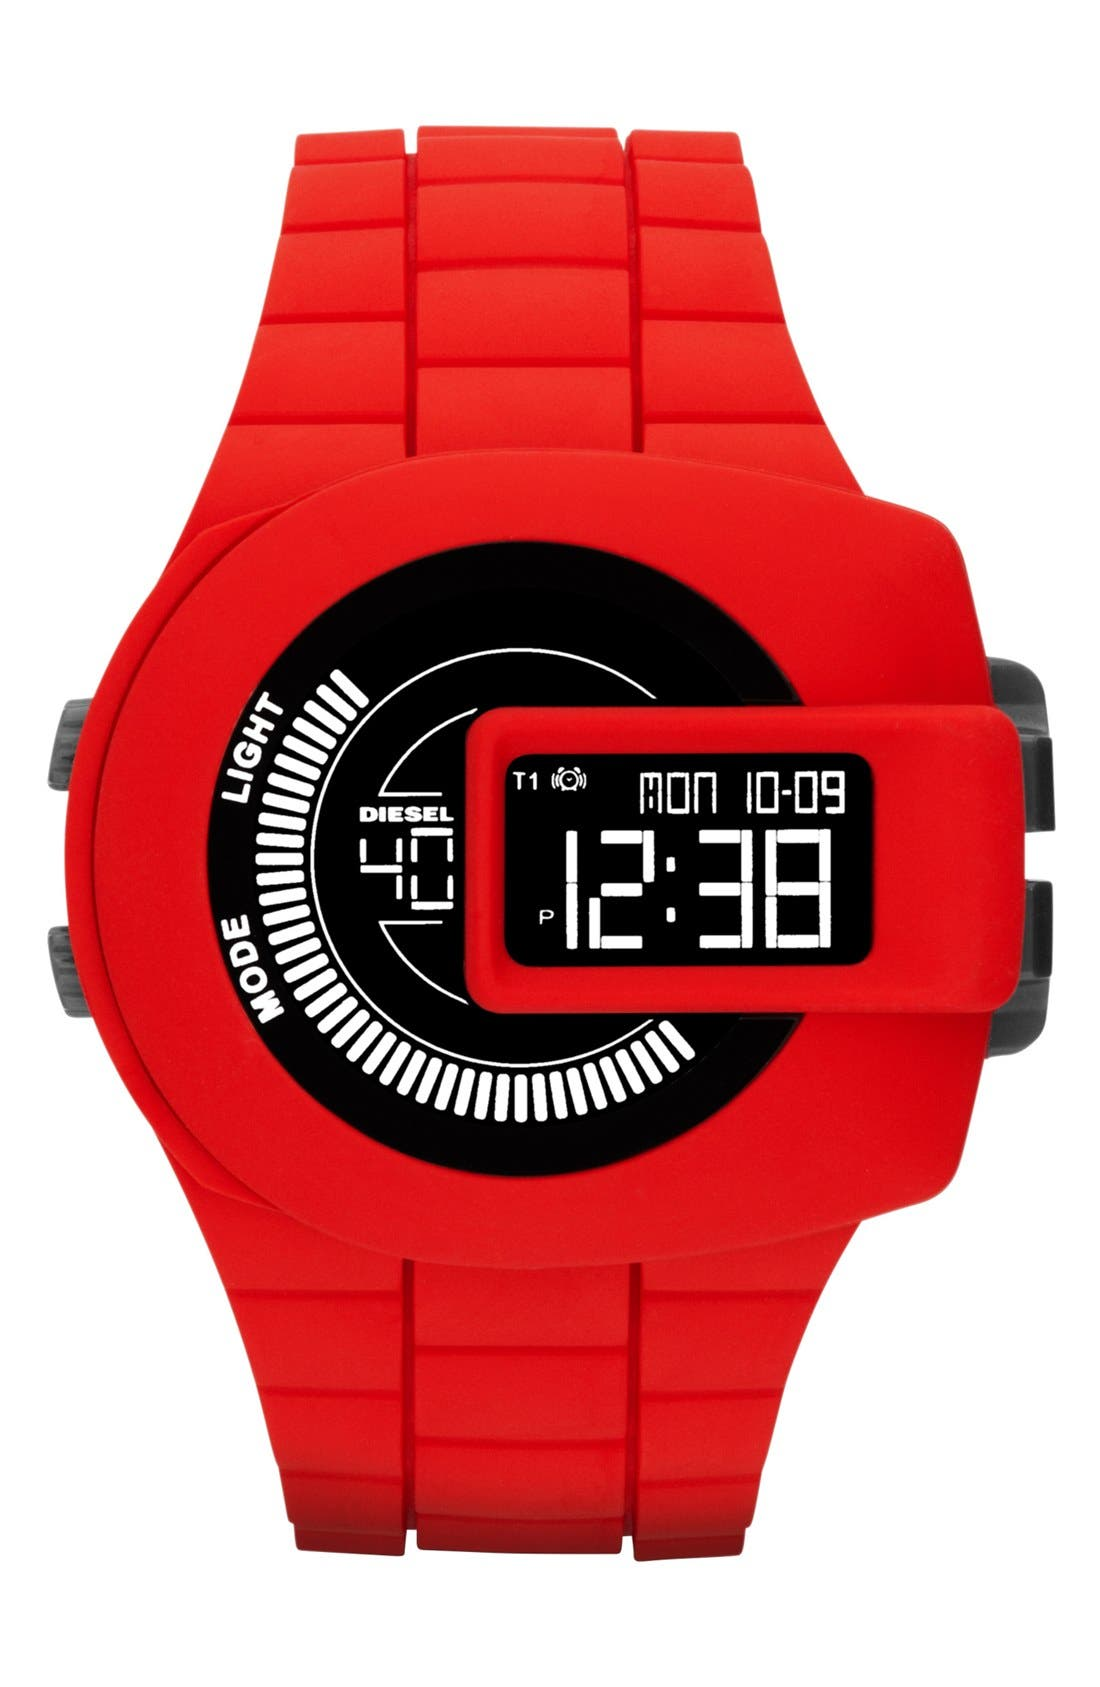 Main Image - DIESEL® 'Viewfinder' Digital Watch, 43mm x 52mm